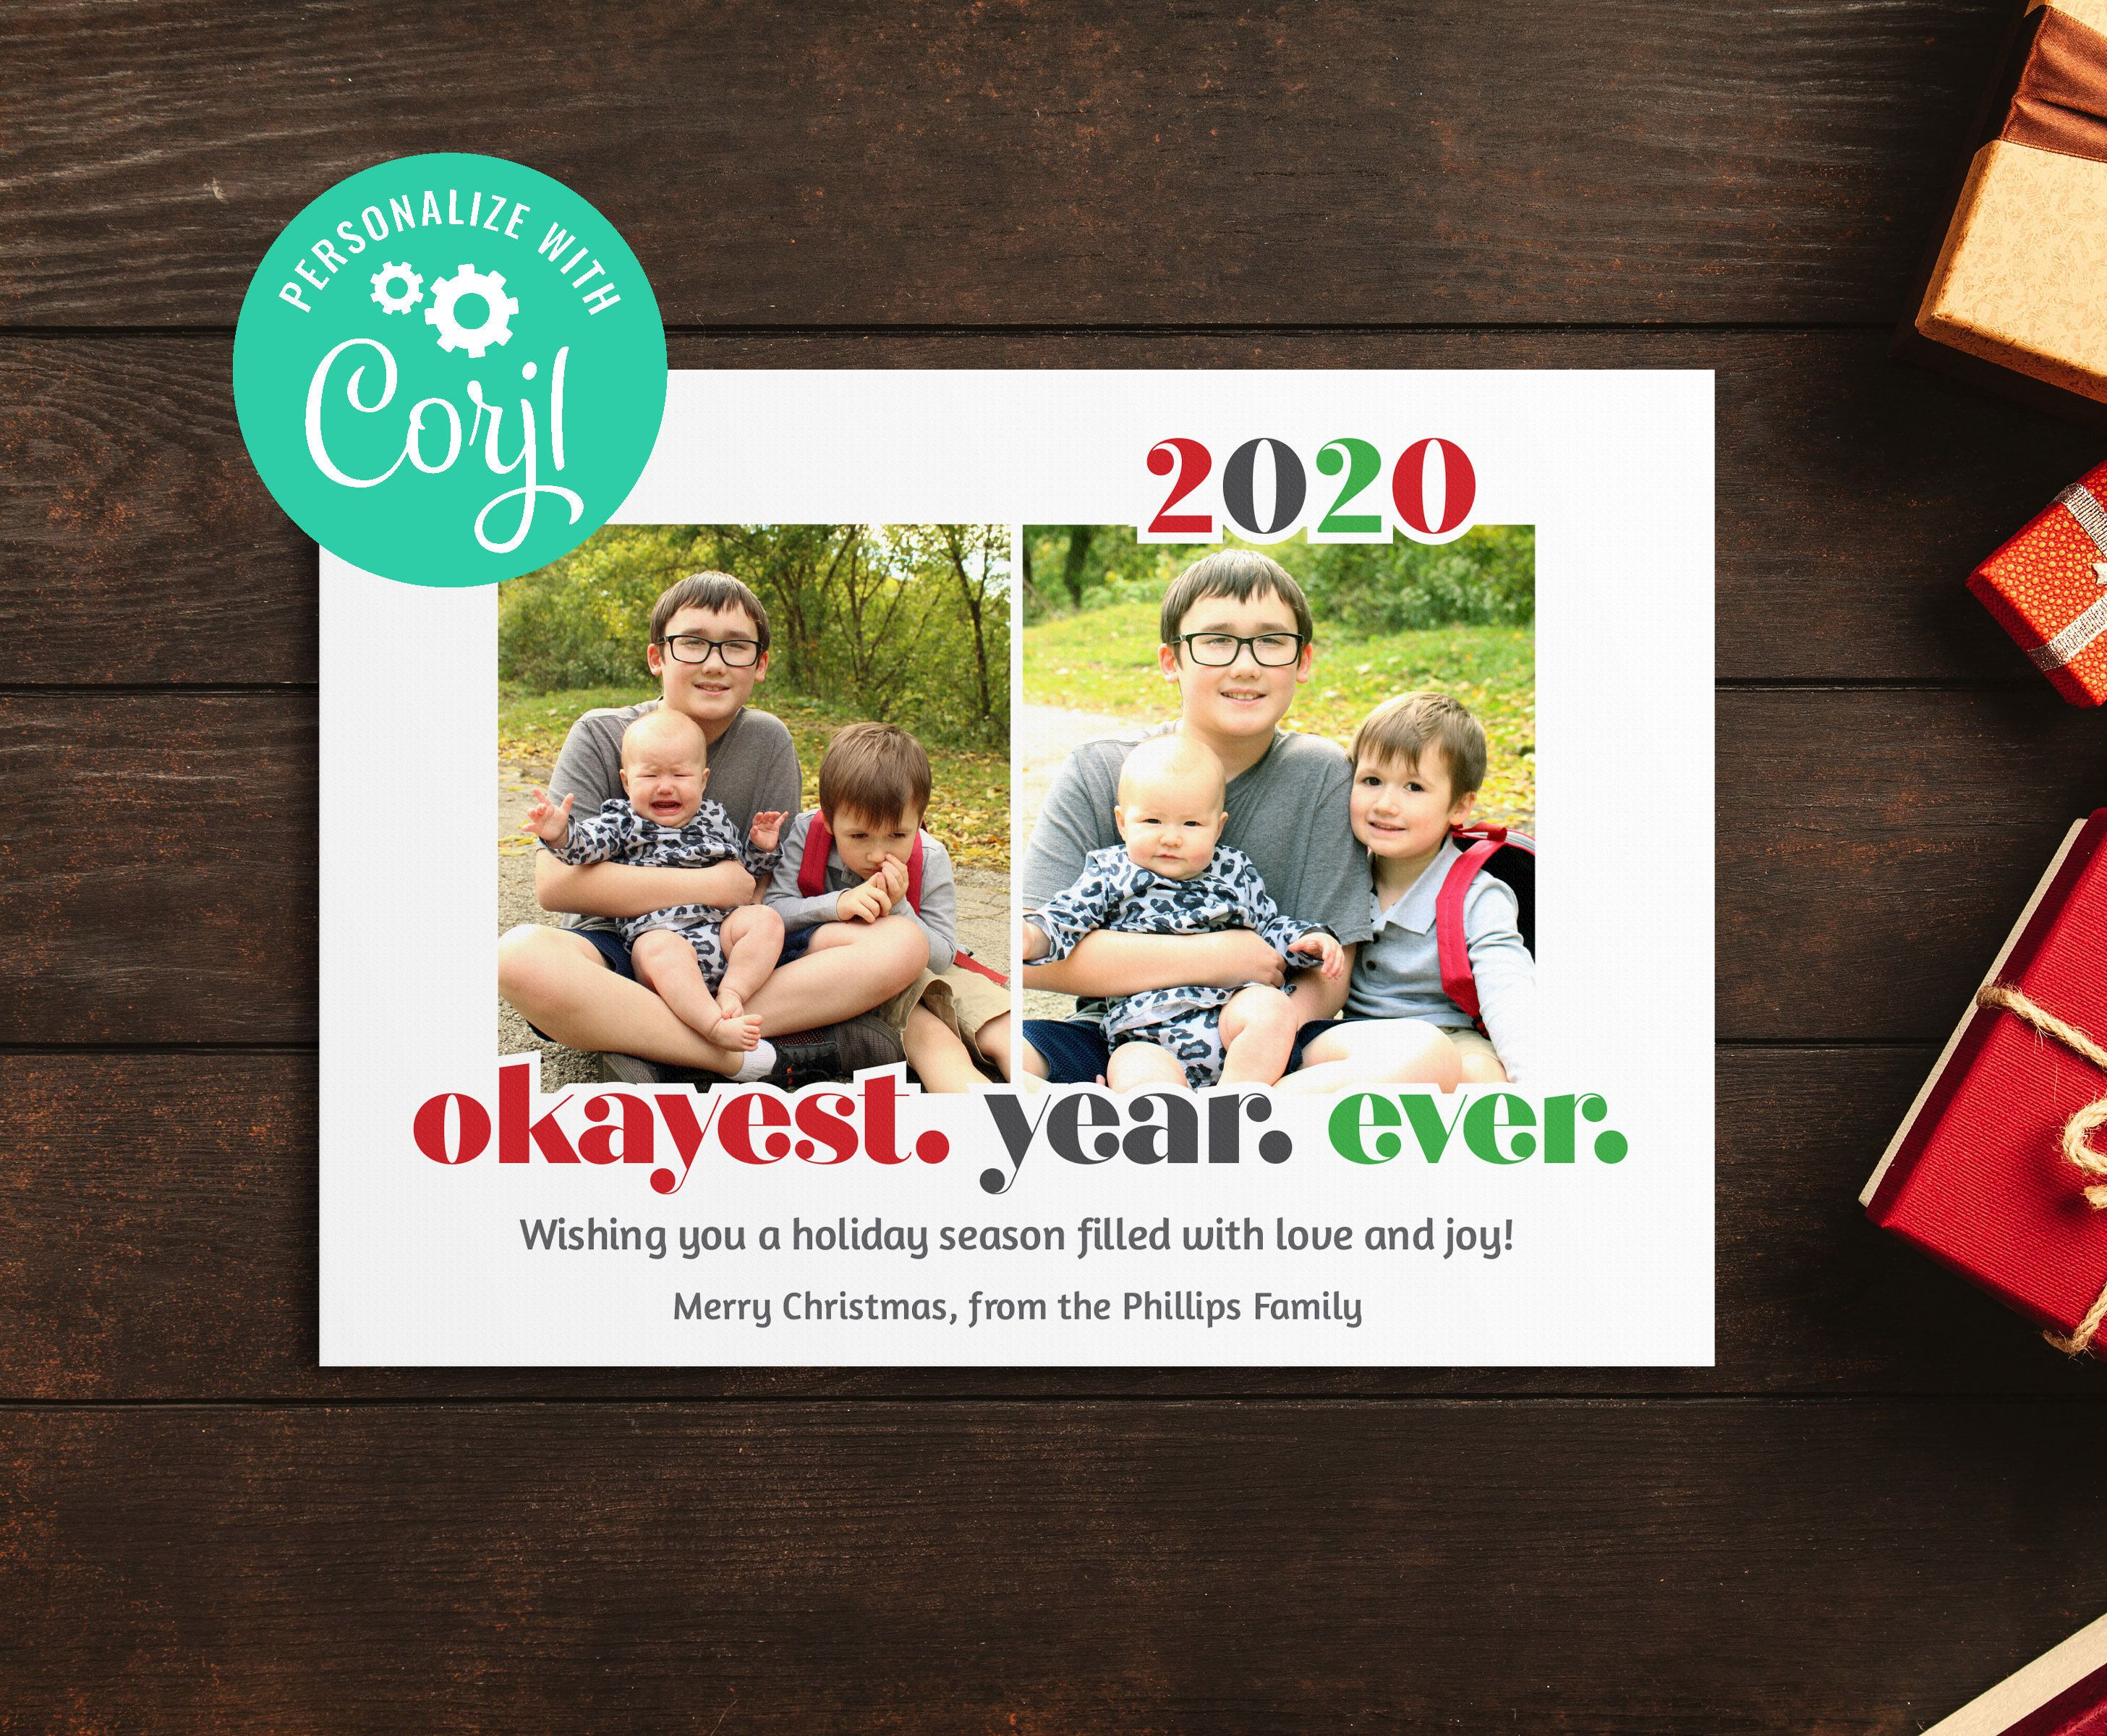 Funny Christmas Card 2020 Holiday Card Okayest Year Ever 2 Etsy In 2021 Funny Holiday Cards Christmas Cards Holiday Cards Family